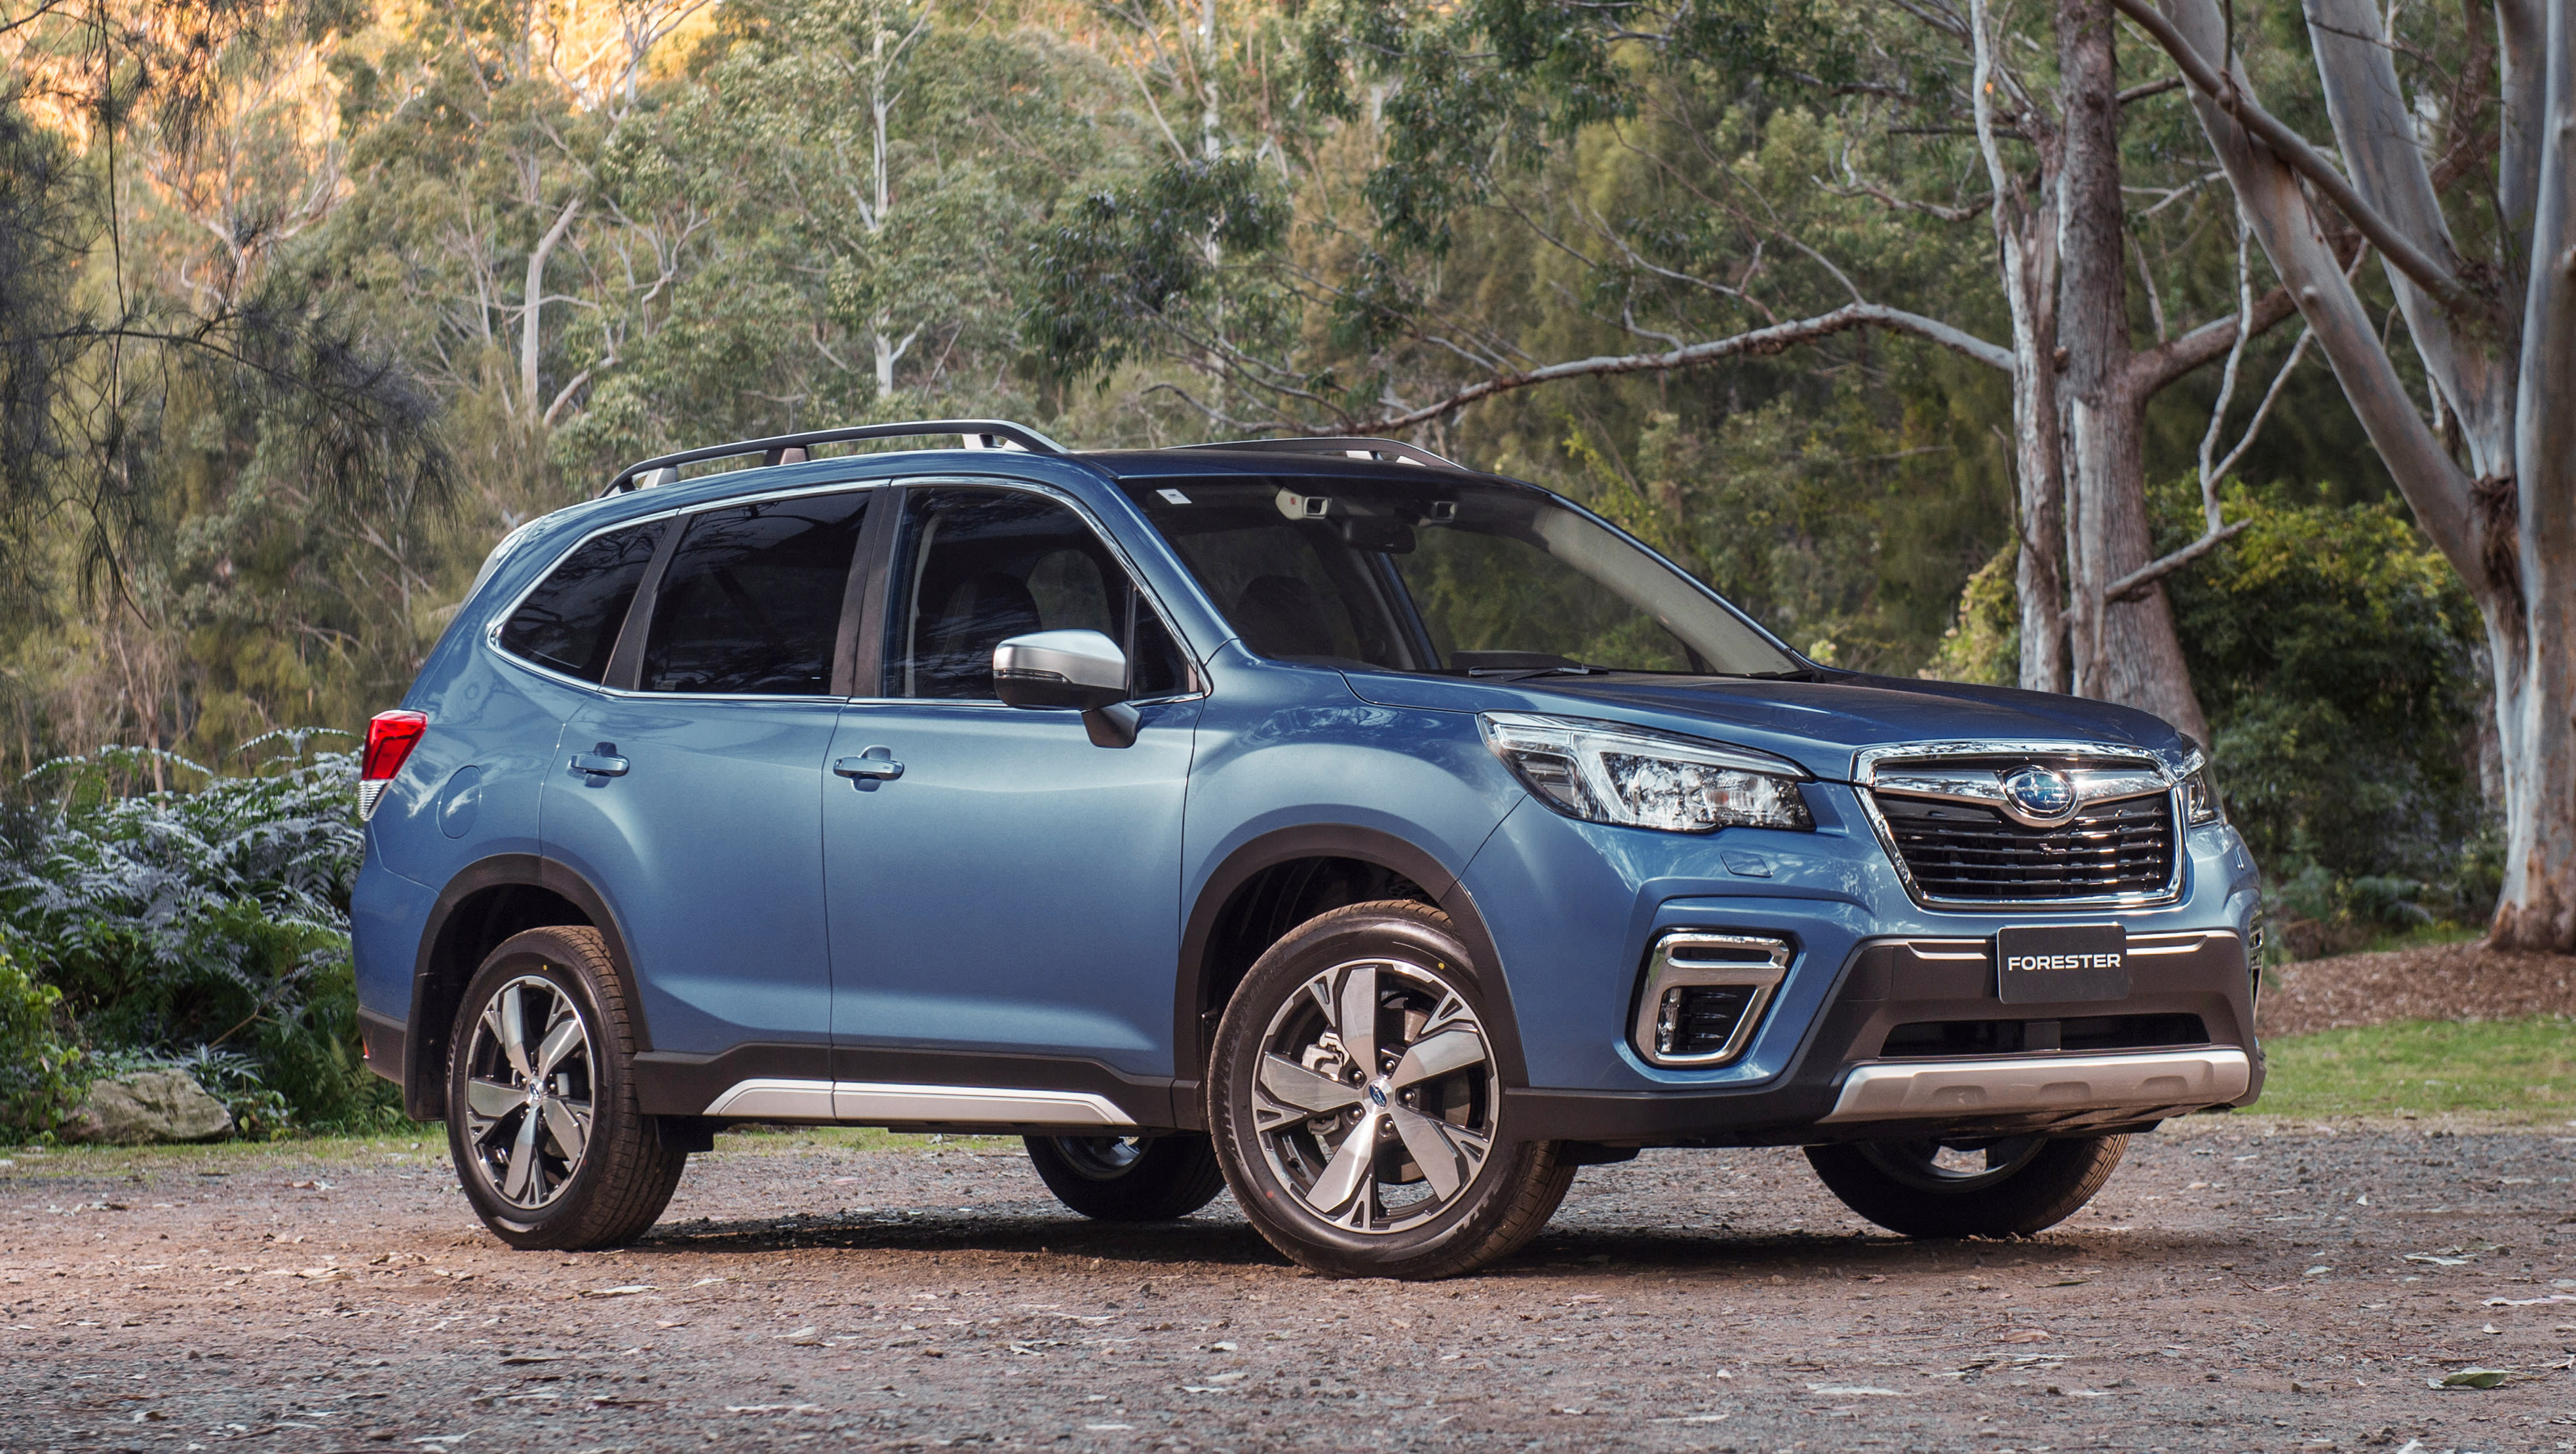 Subaru Forester 2 5i S 2019 Review Snapshot Carsguide